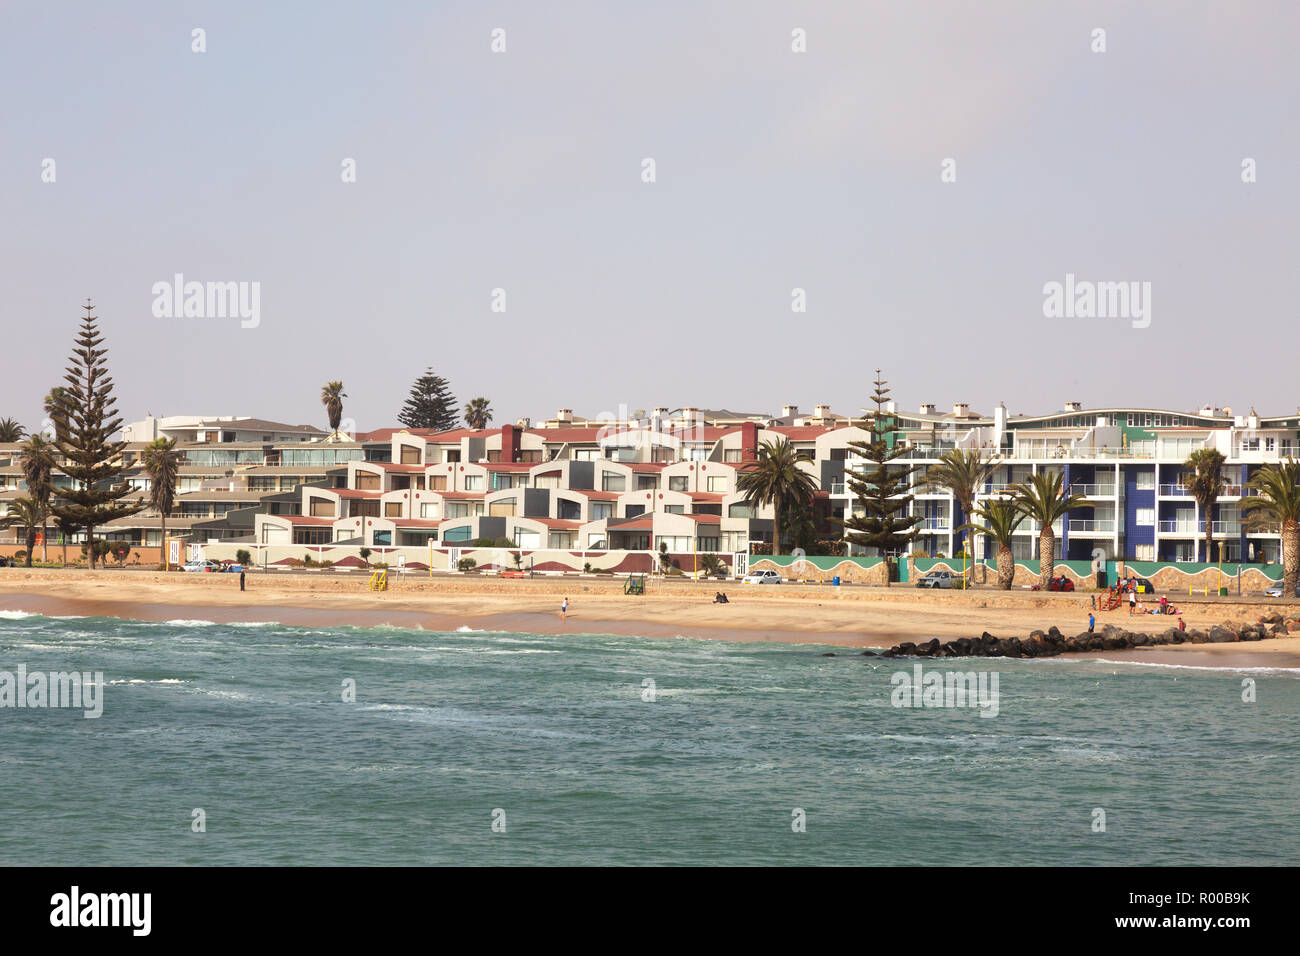 Swakopmund houses - houses and buildings on the beach at the resort town of Swakopmund, Namibia Africa - Stock Image